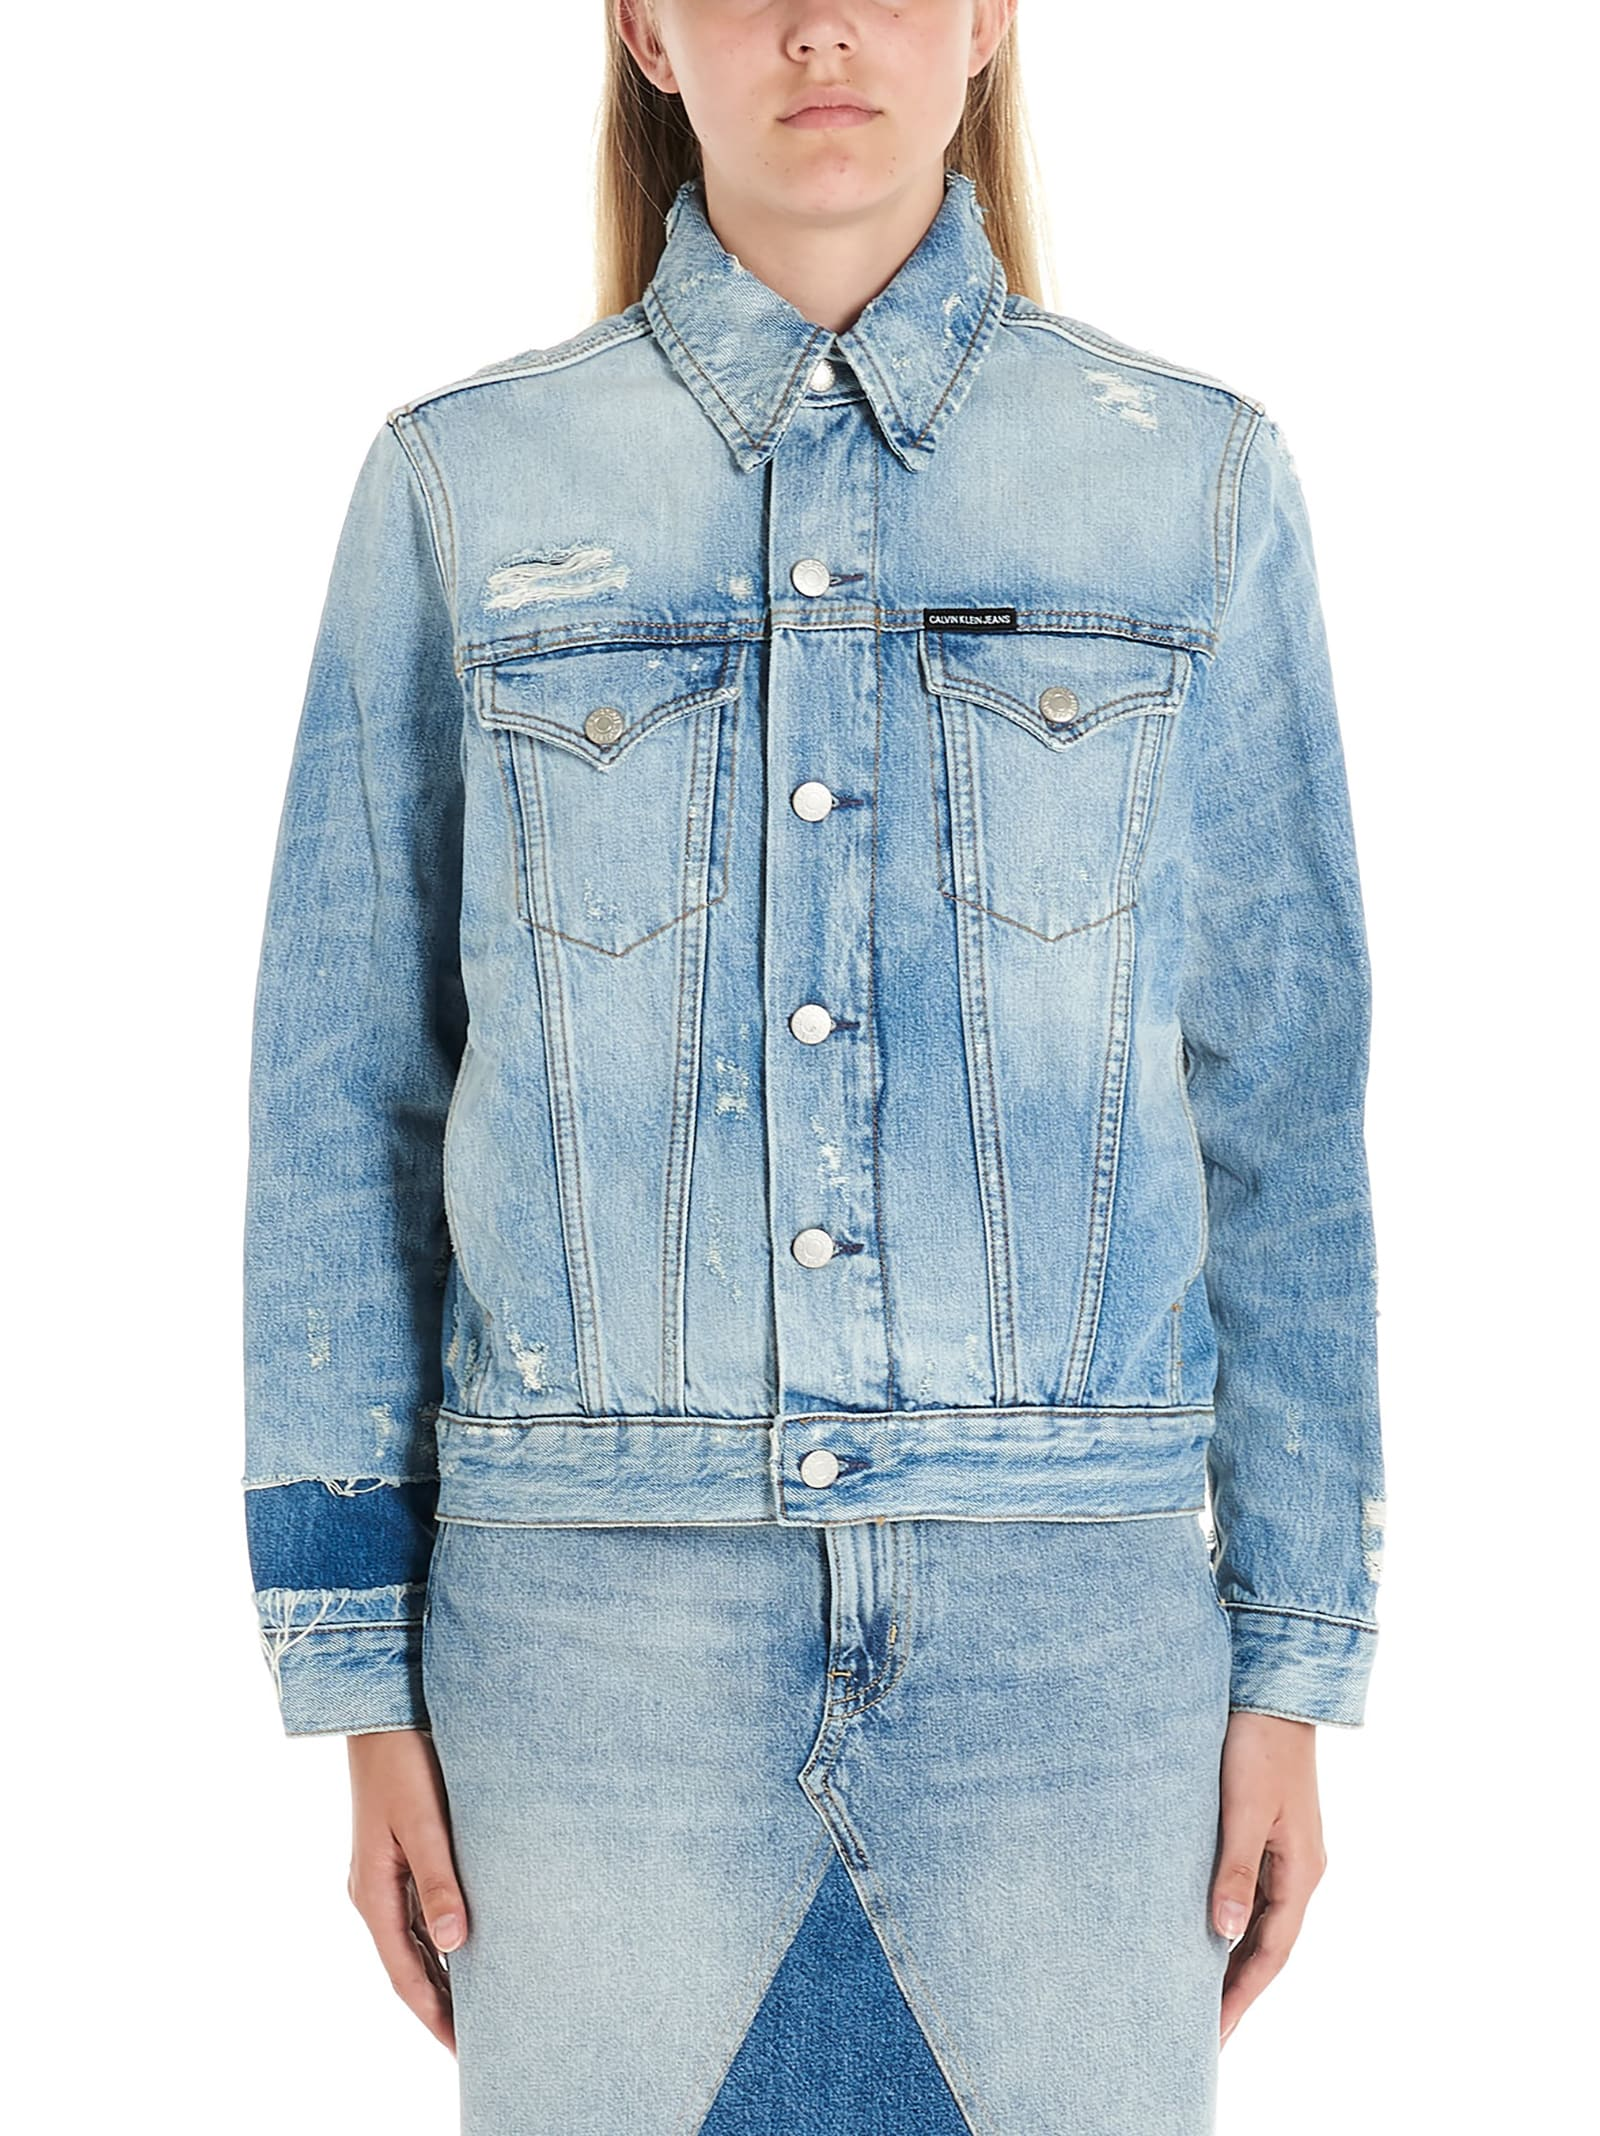 Photo of  Calvin Klein Jeans caballero Jacket- shop Calvin Klein Jeans jackets online sales